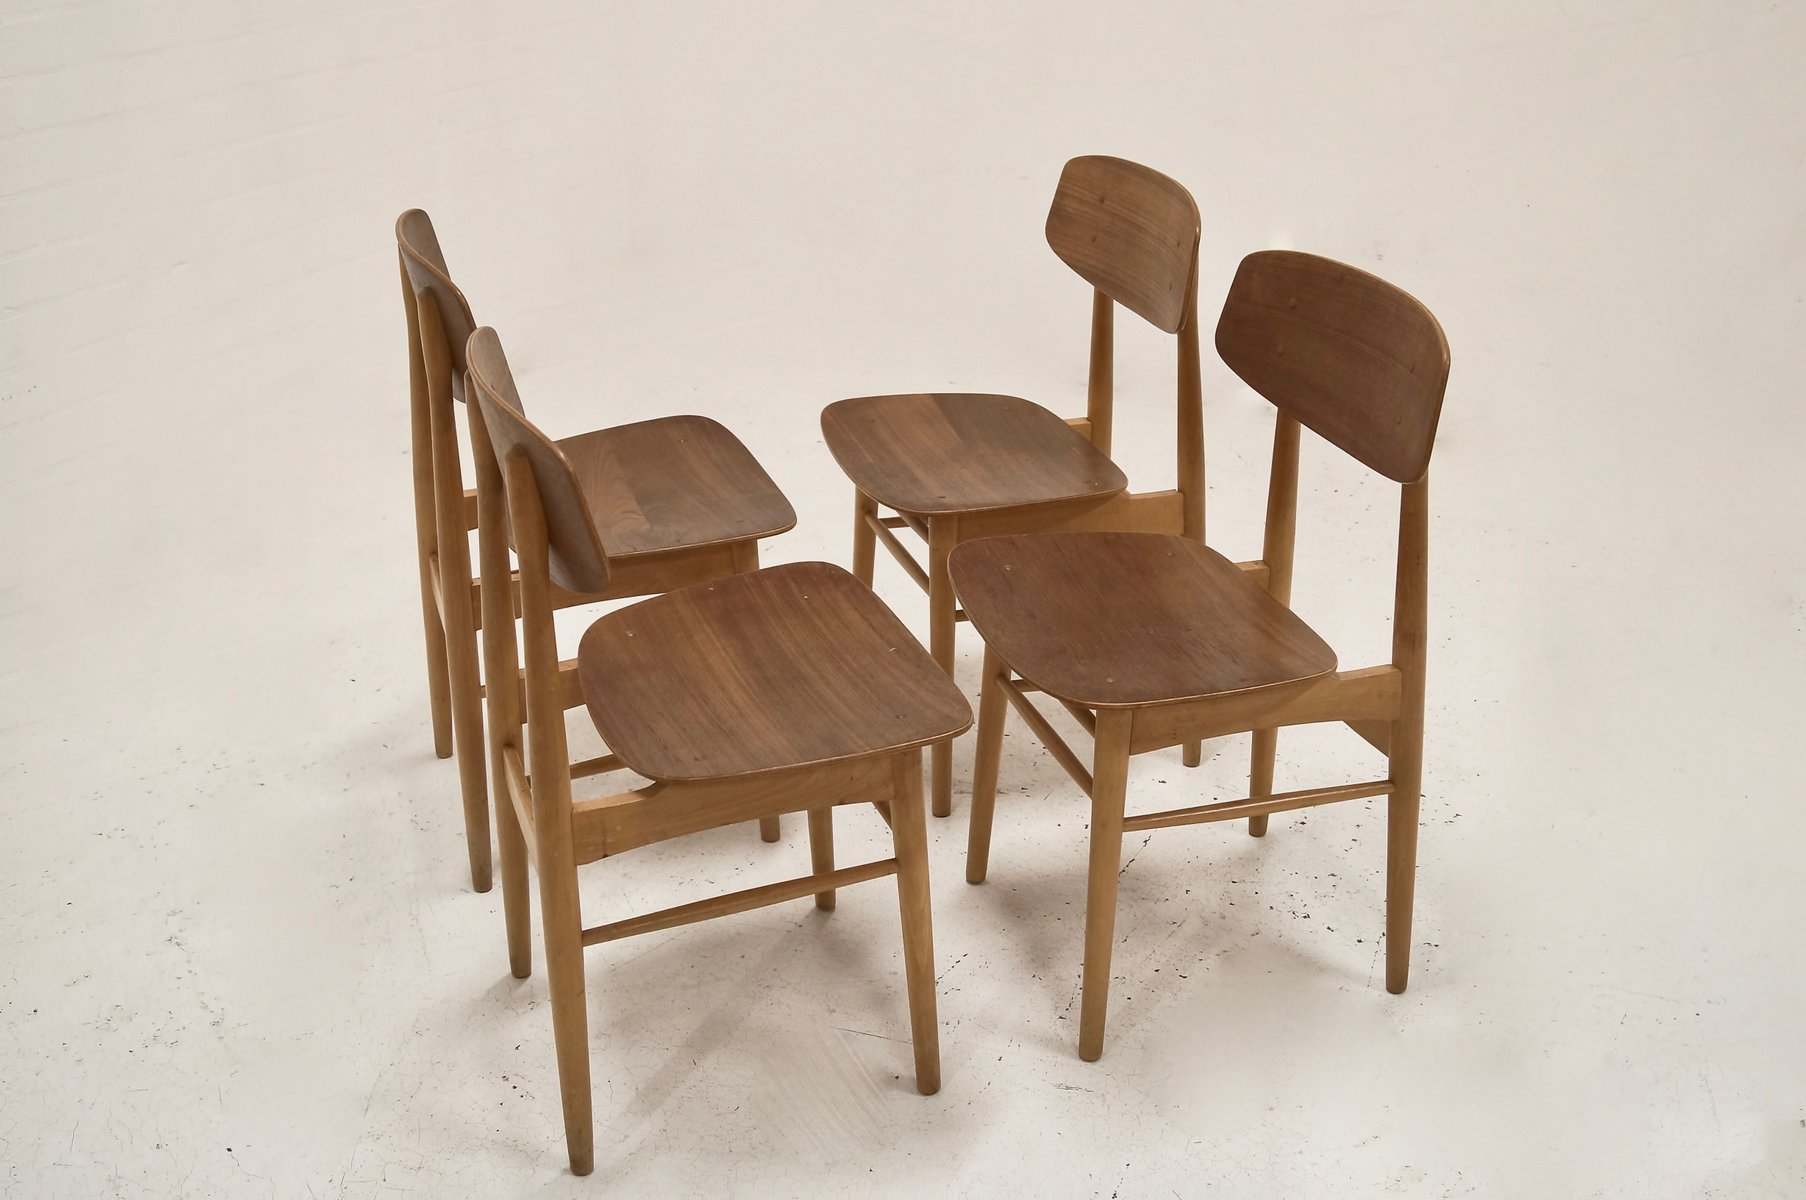 ^ Mid-entury Modern Danish Beech and eak Plywood hairs, 1950s ...